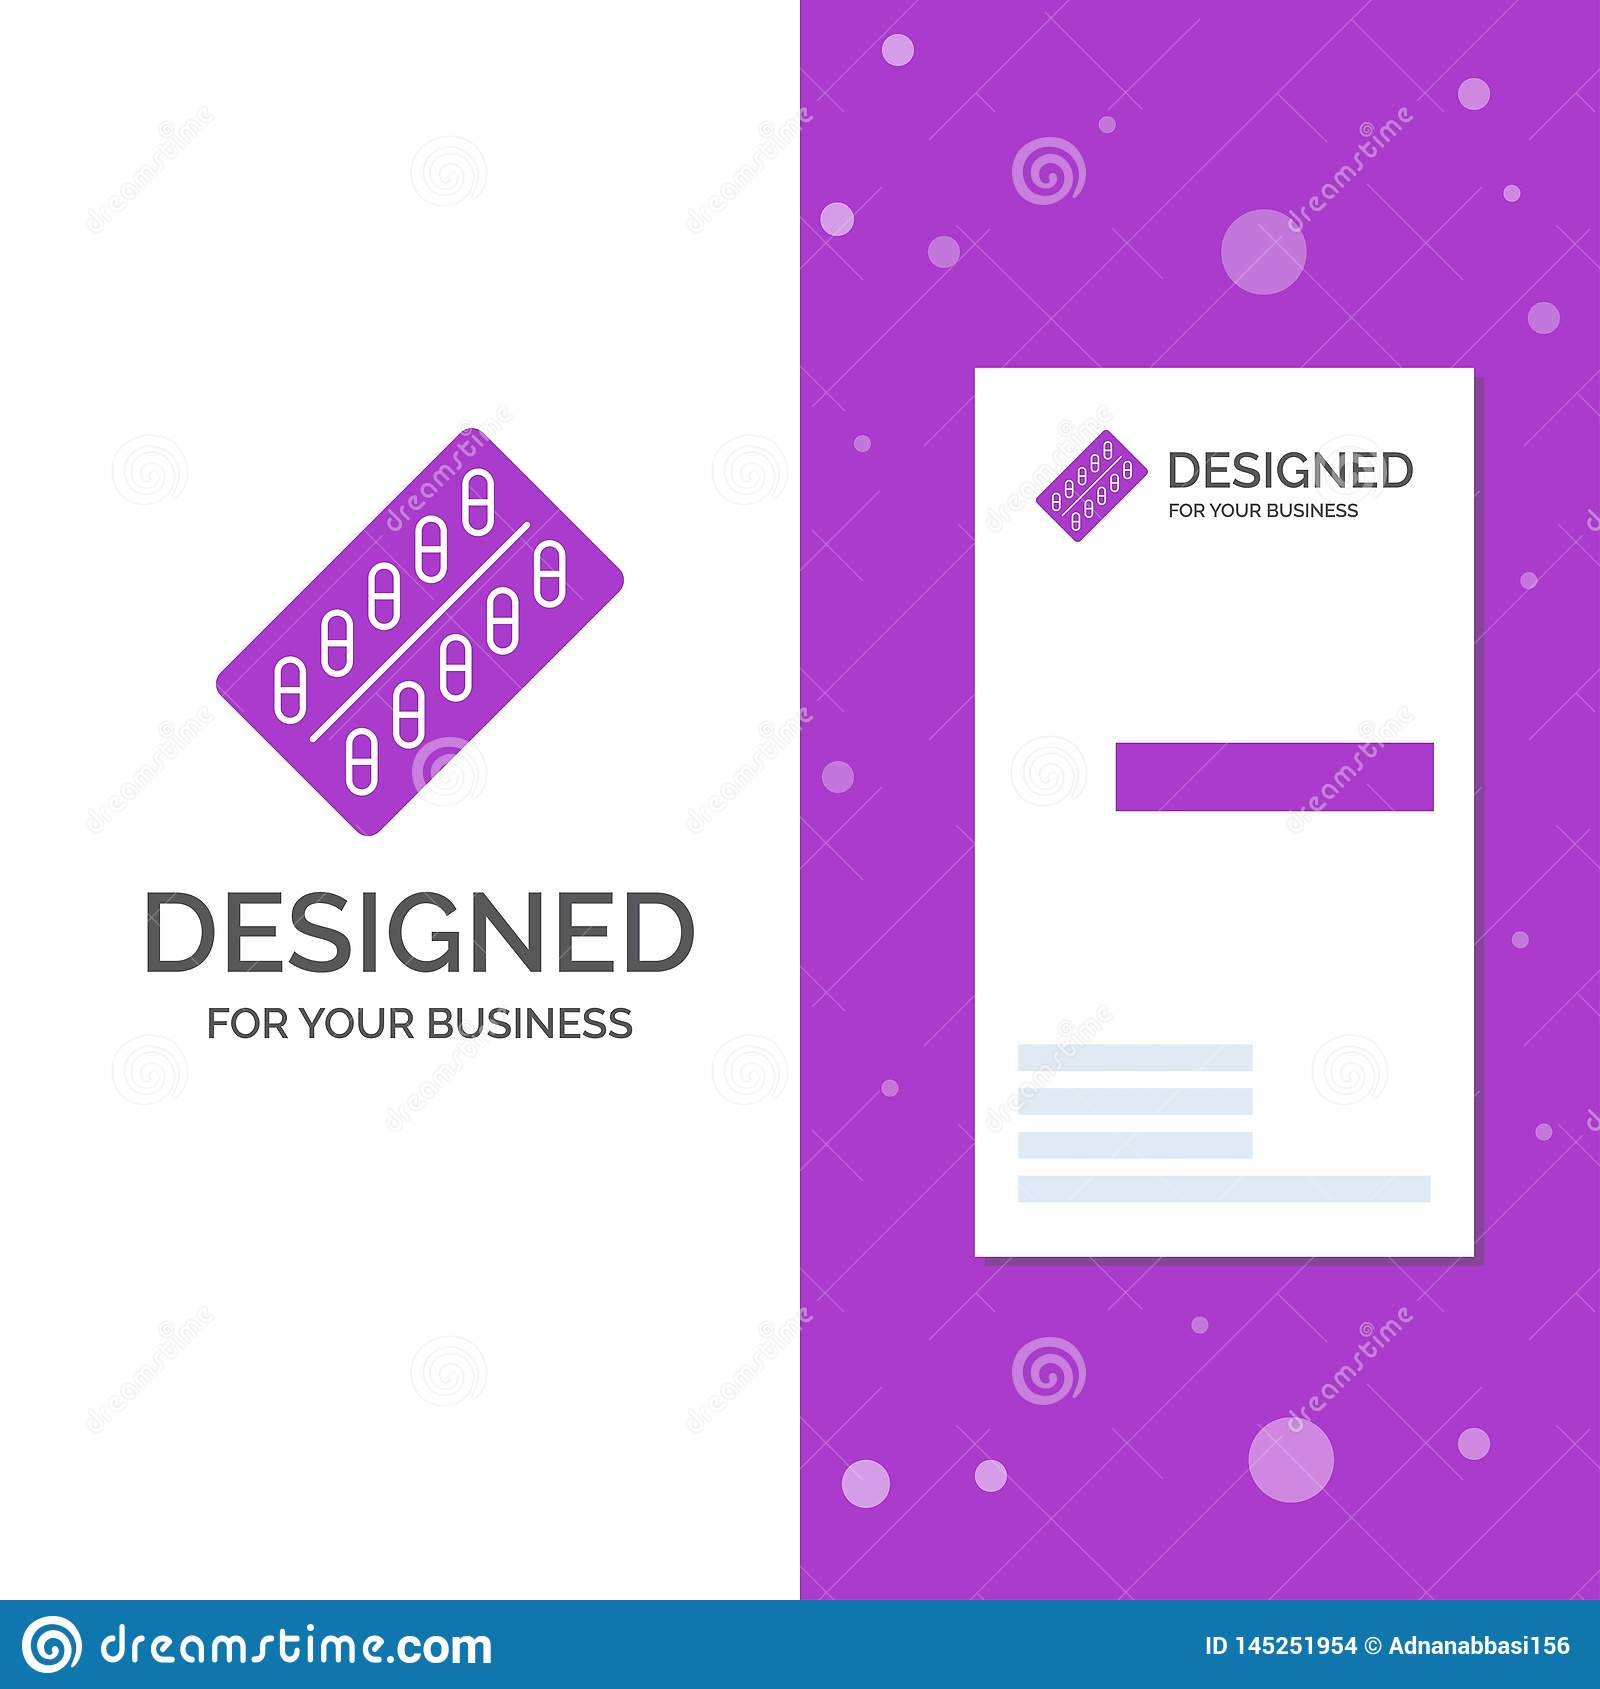 Business Logo for medicine, Pill, drugs, tablet, packet. Vertical Purple Business / Visiting Card template. Creative background